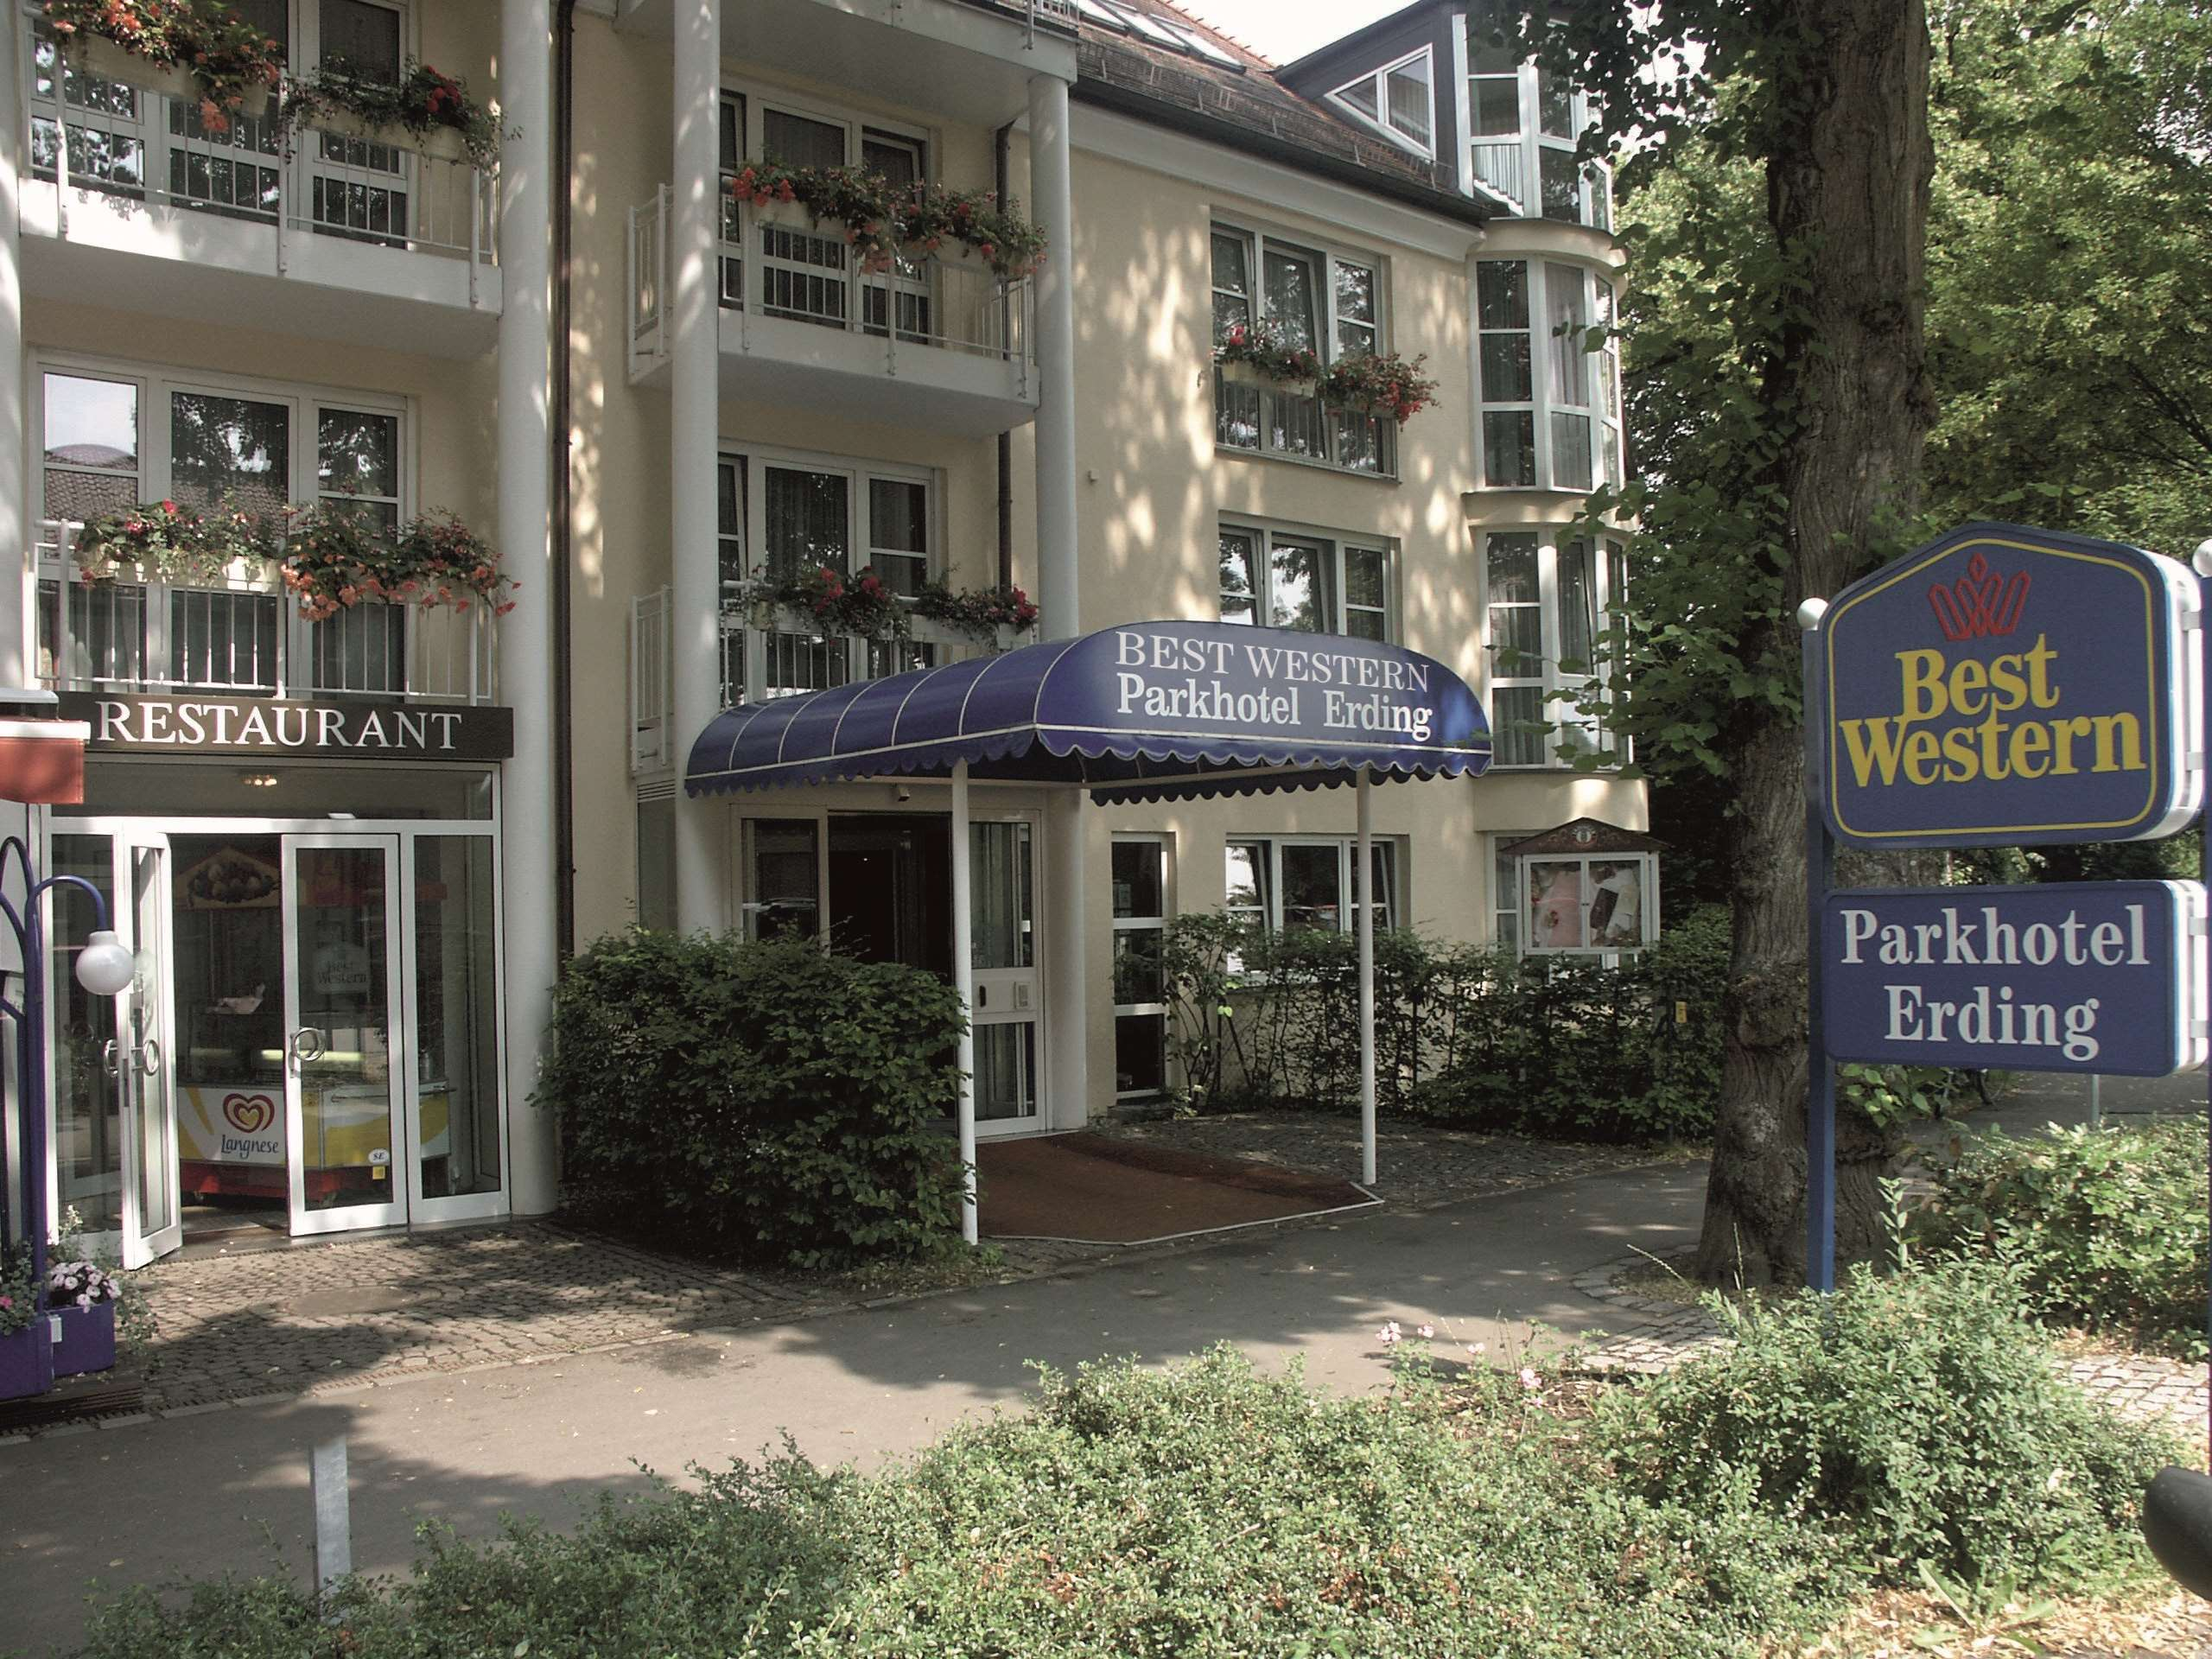 Best Western Hotel Erding Germany